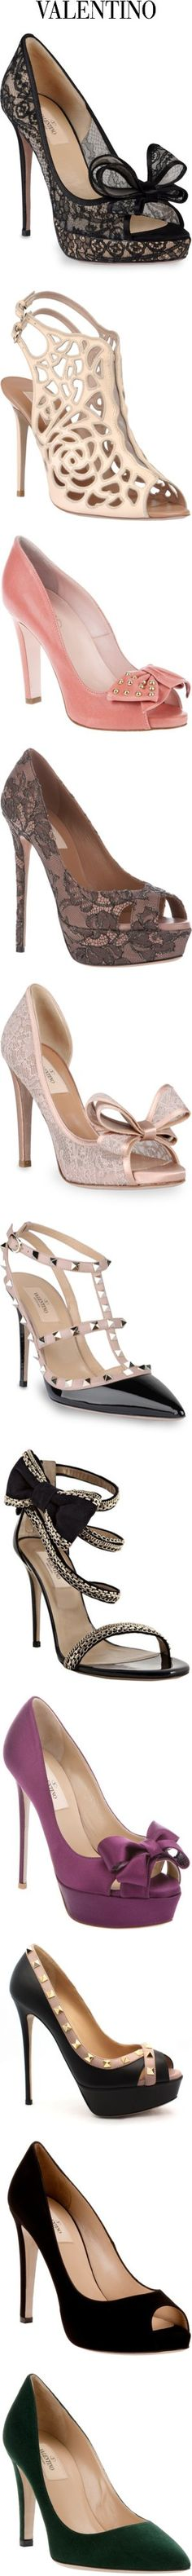 Valentino...did someone say shoes?? :D http://www.amazon.com/s/ref=lp_672123011_nr_n_0?rh=n%3A672123011%2Cn%3A!672124011%2Cn%3A679337011=672124011=UTF8=1350114098=672124011/ultrai7-20/